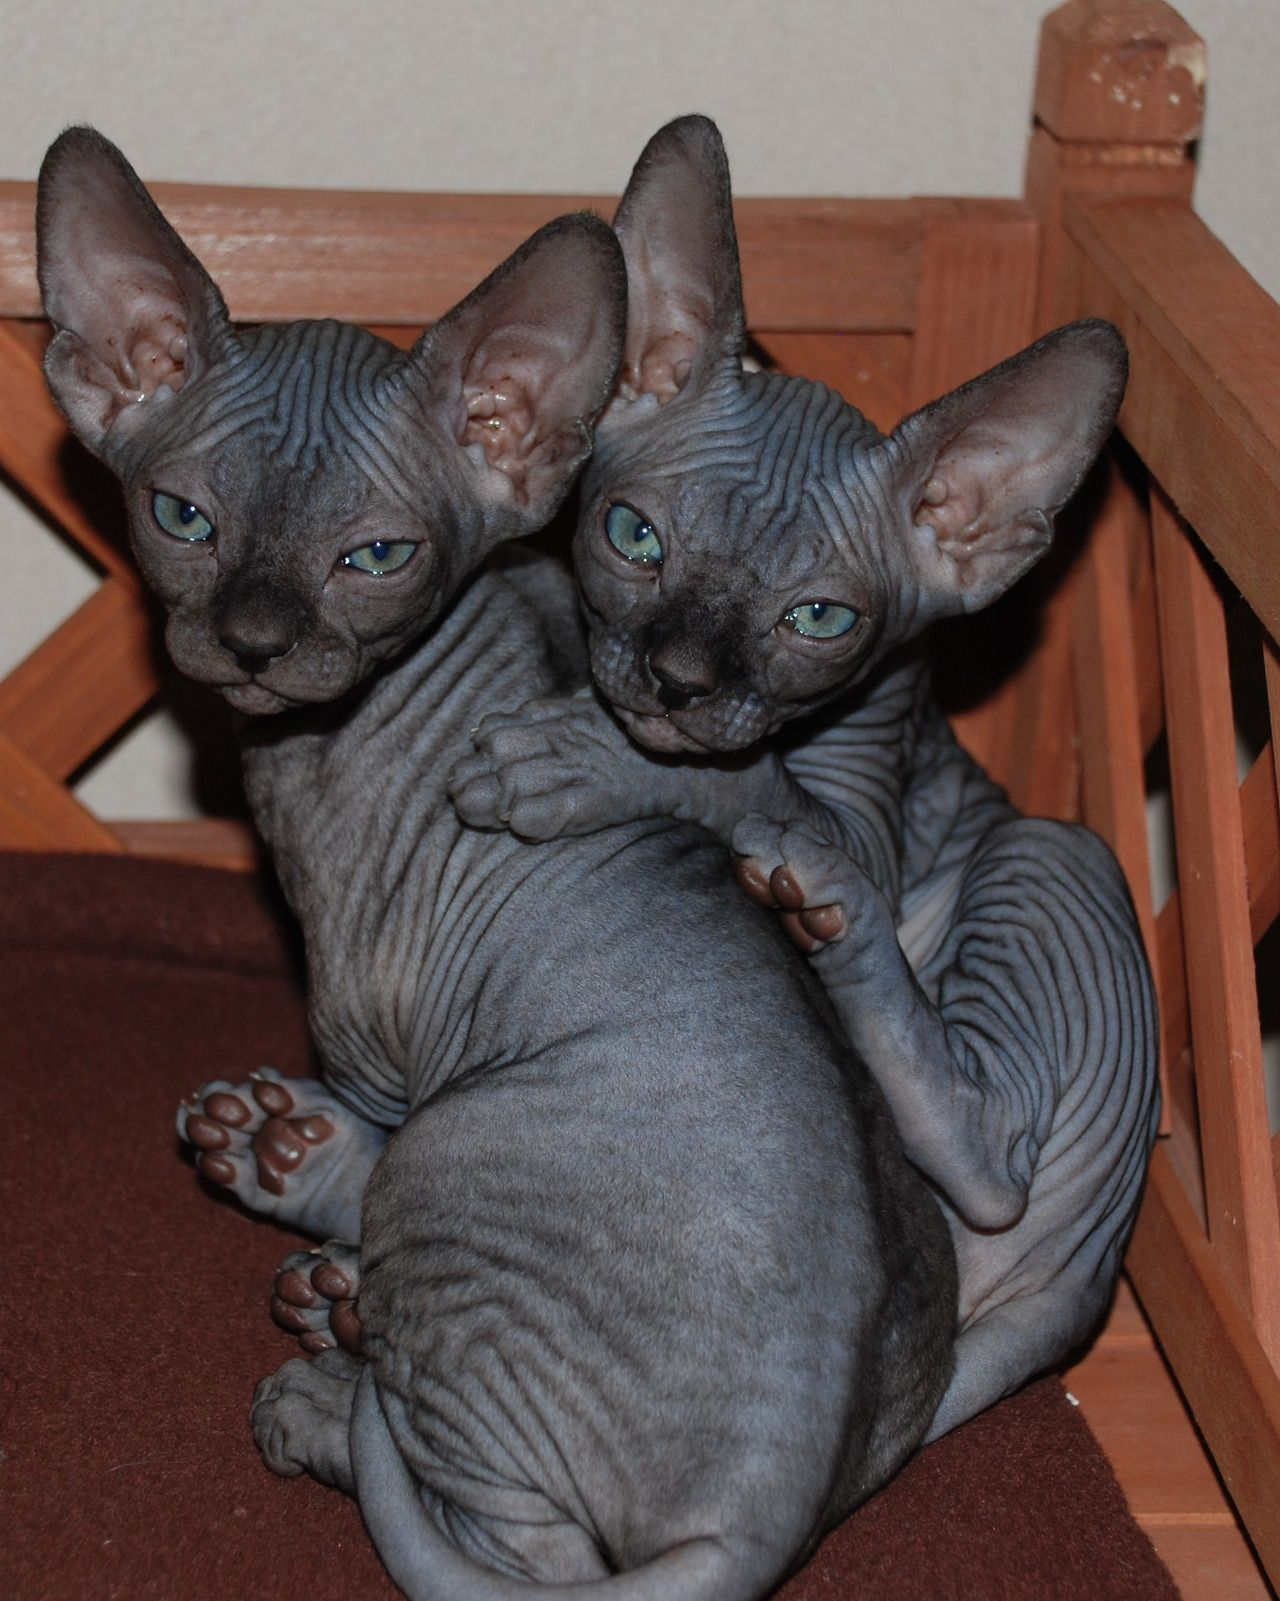 Tap For That 40 Off Or More Shire Fire Sale Lots Of Kitty Love For Everyone Plus Free Shipping W Sphynx Kittens For Sale Hairless Kitten Sphynx Cat